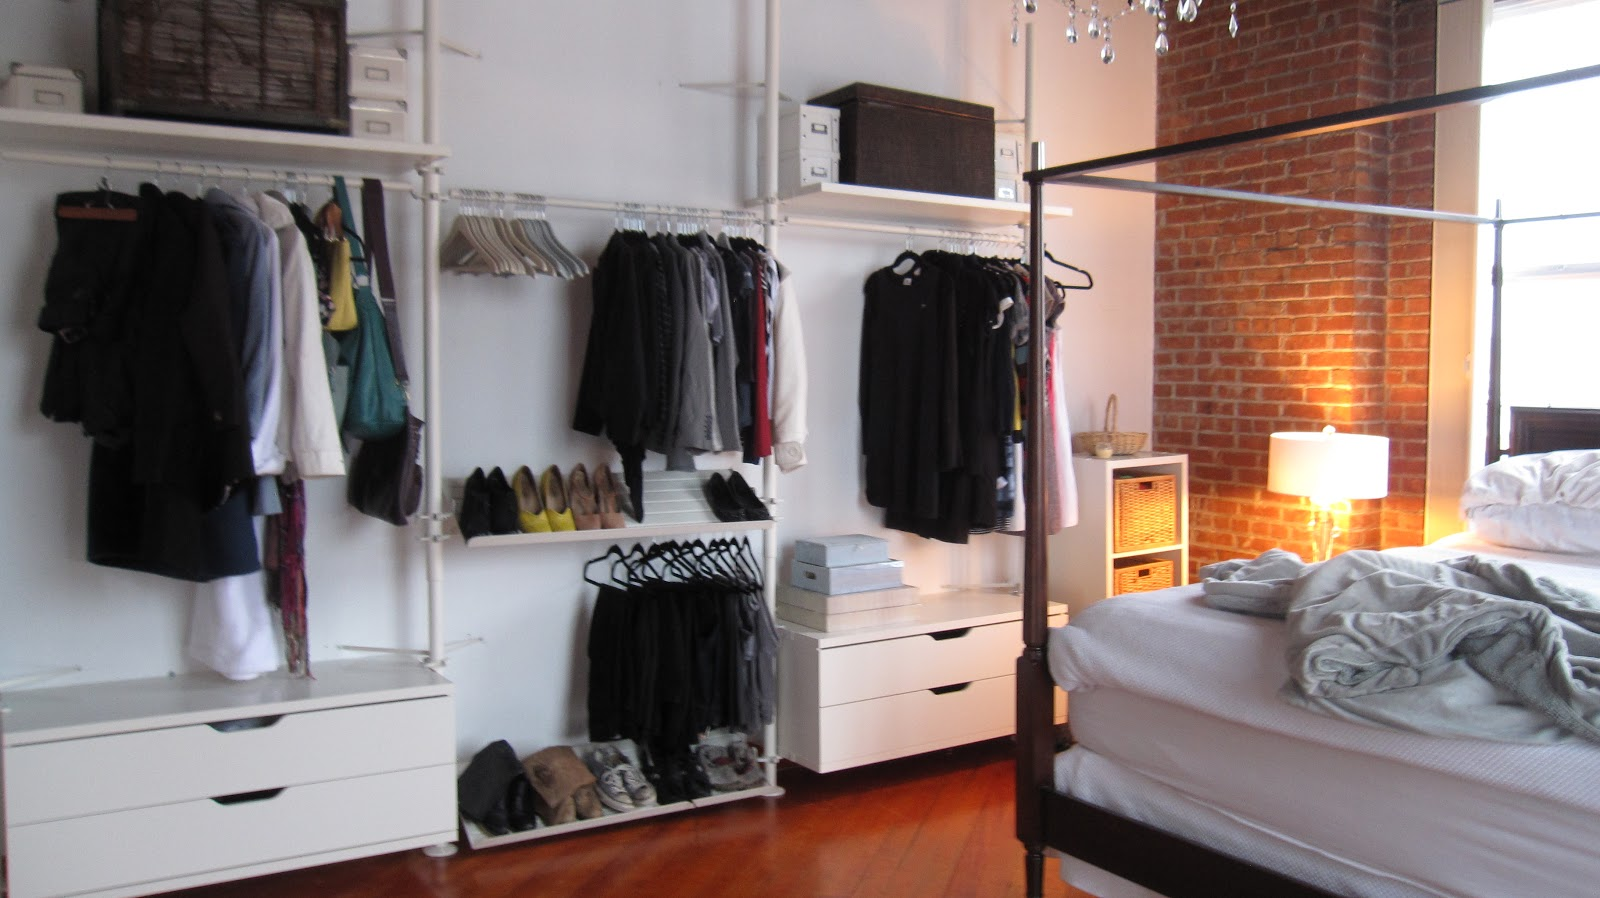 my second storey let there be closet oh and light s. Black Bedroom Furniture Sets. Home Design Ideas